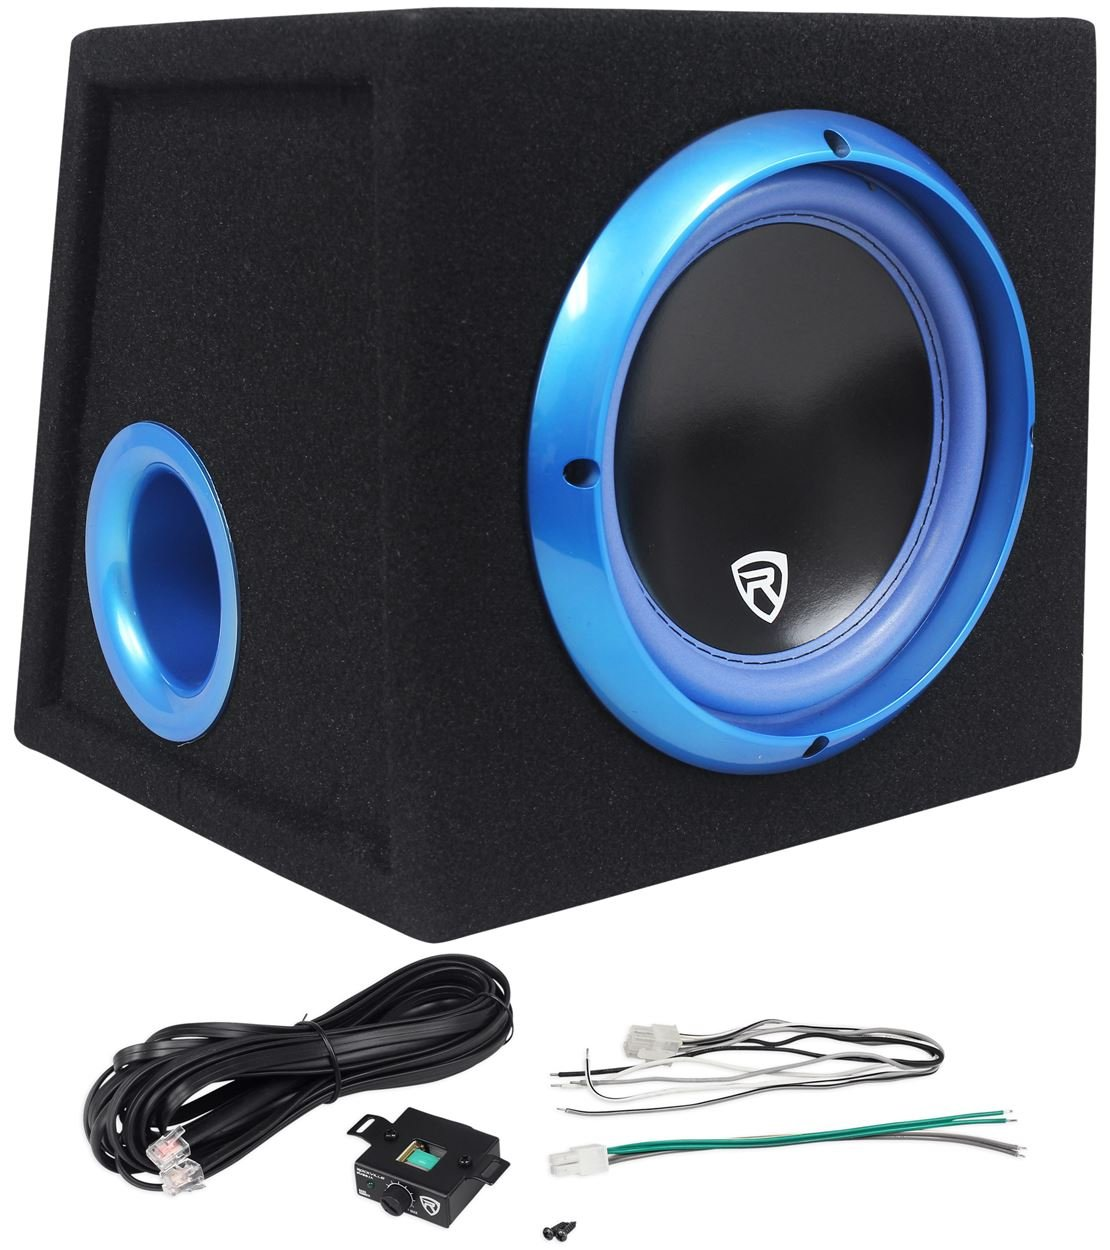 Rockville RVB12.1A 12 Inch 500W Active Powered Car Subwoofer+Sub Enclosure Box Audiosavings